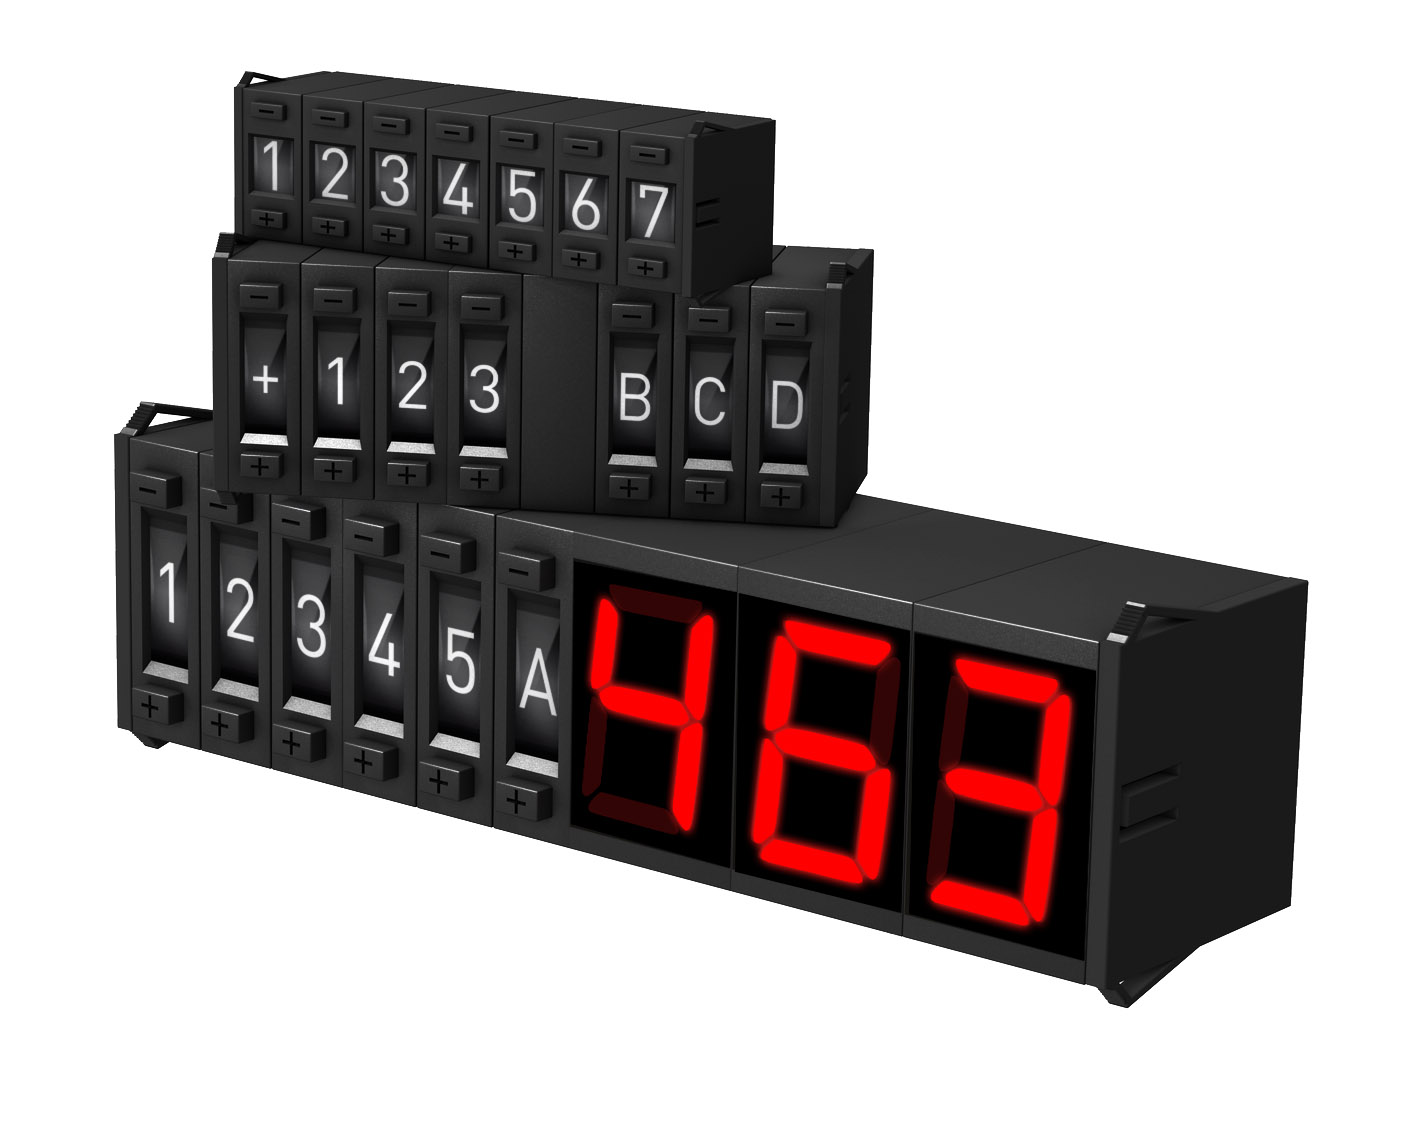 Modular 7-segment small displays and encoding switches